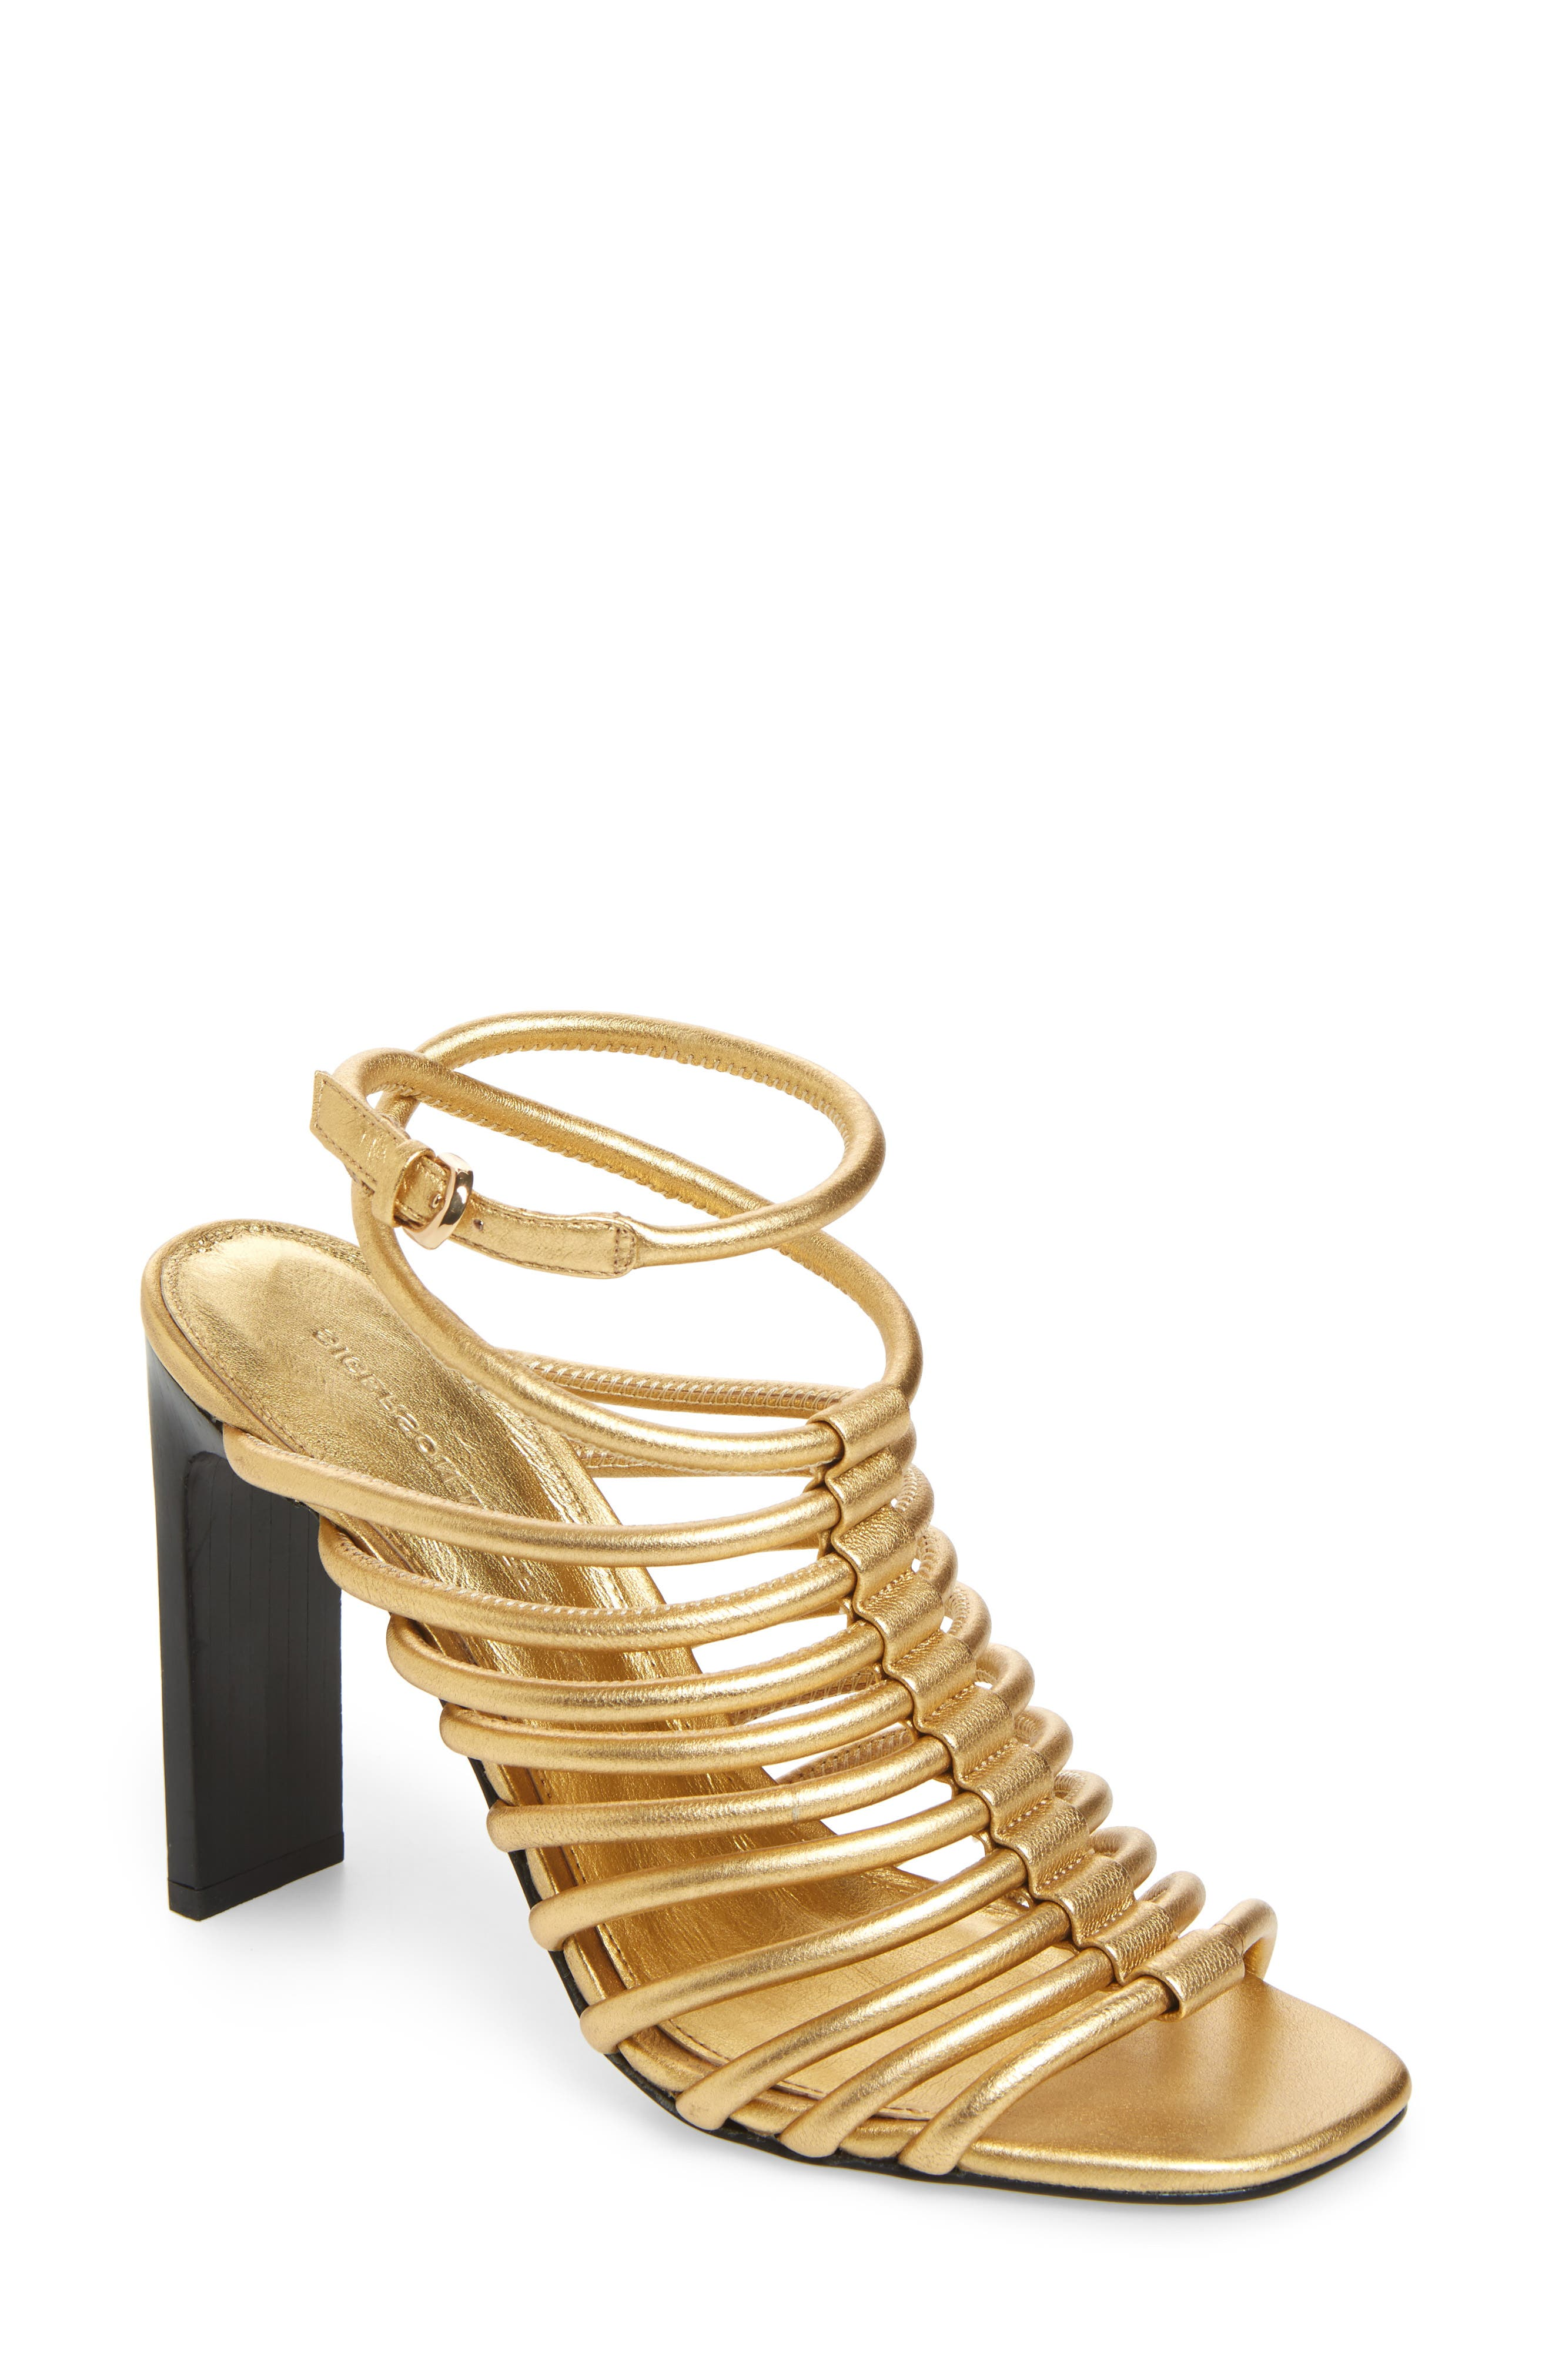 HH Caged Ankle Strap Sandal,                             Main thumbnail 1, color,                             Gold